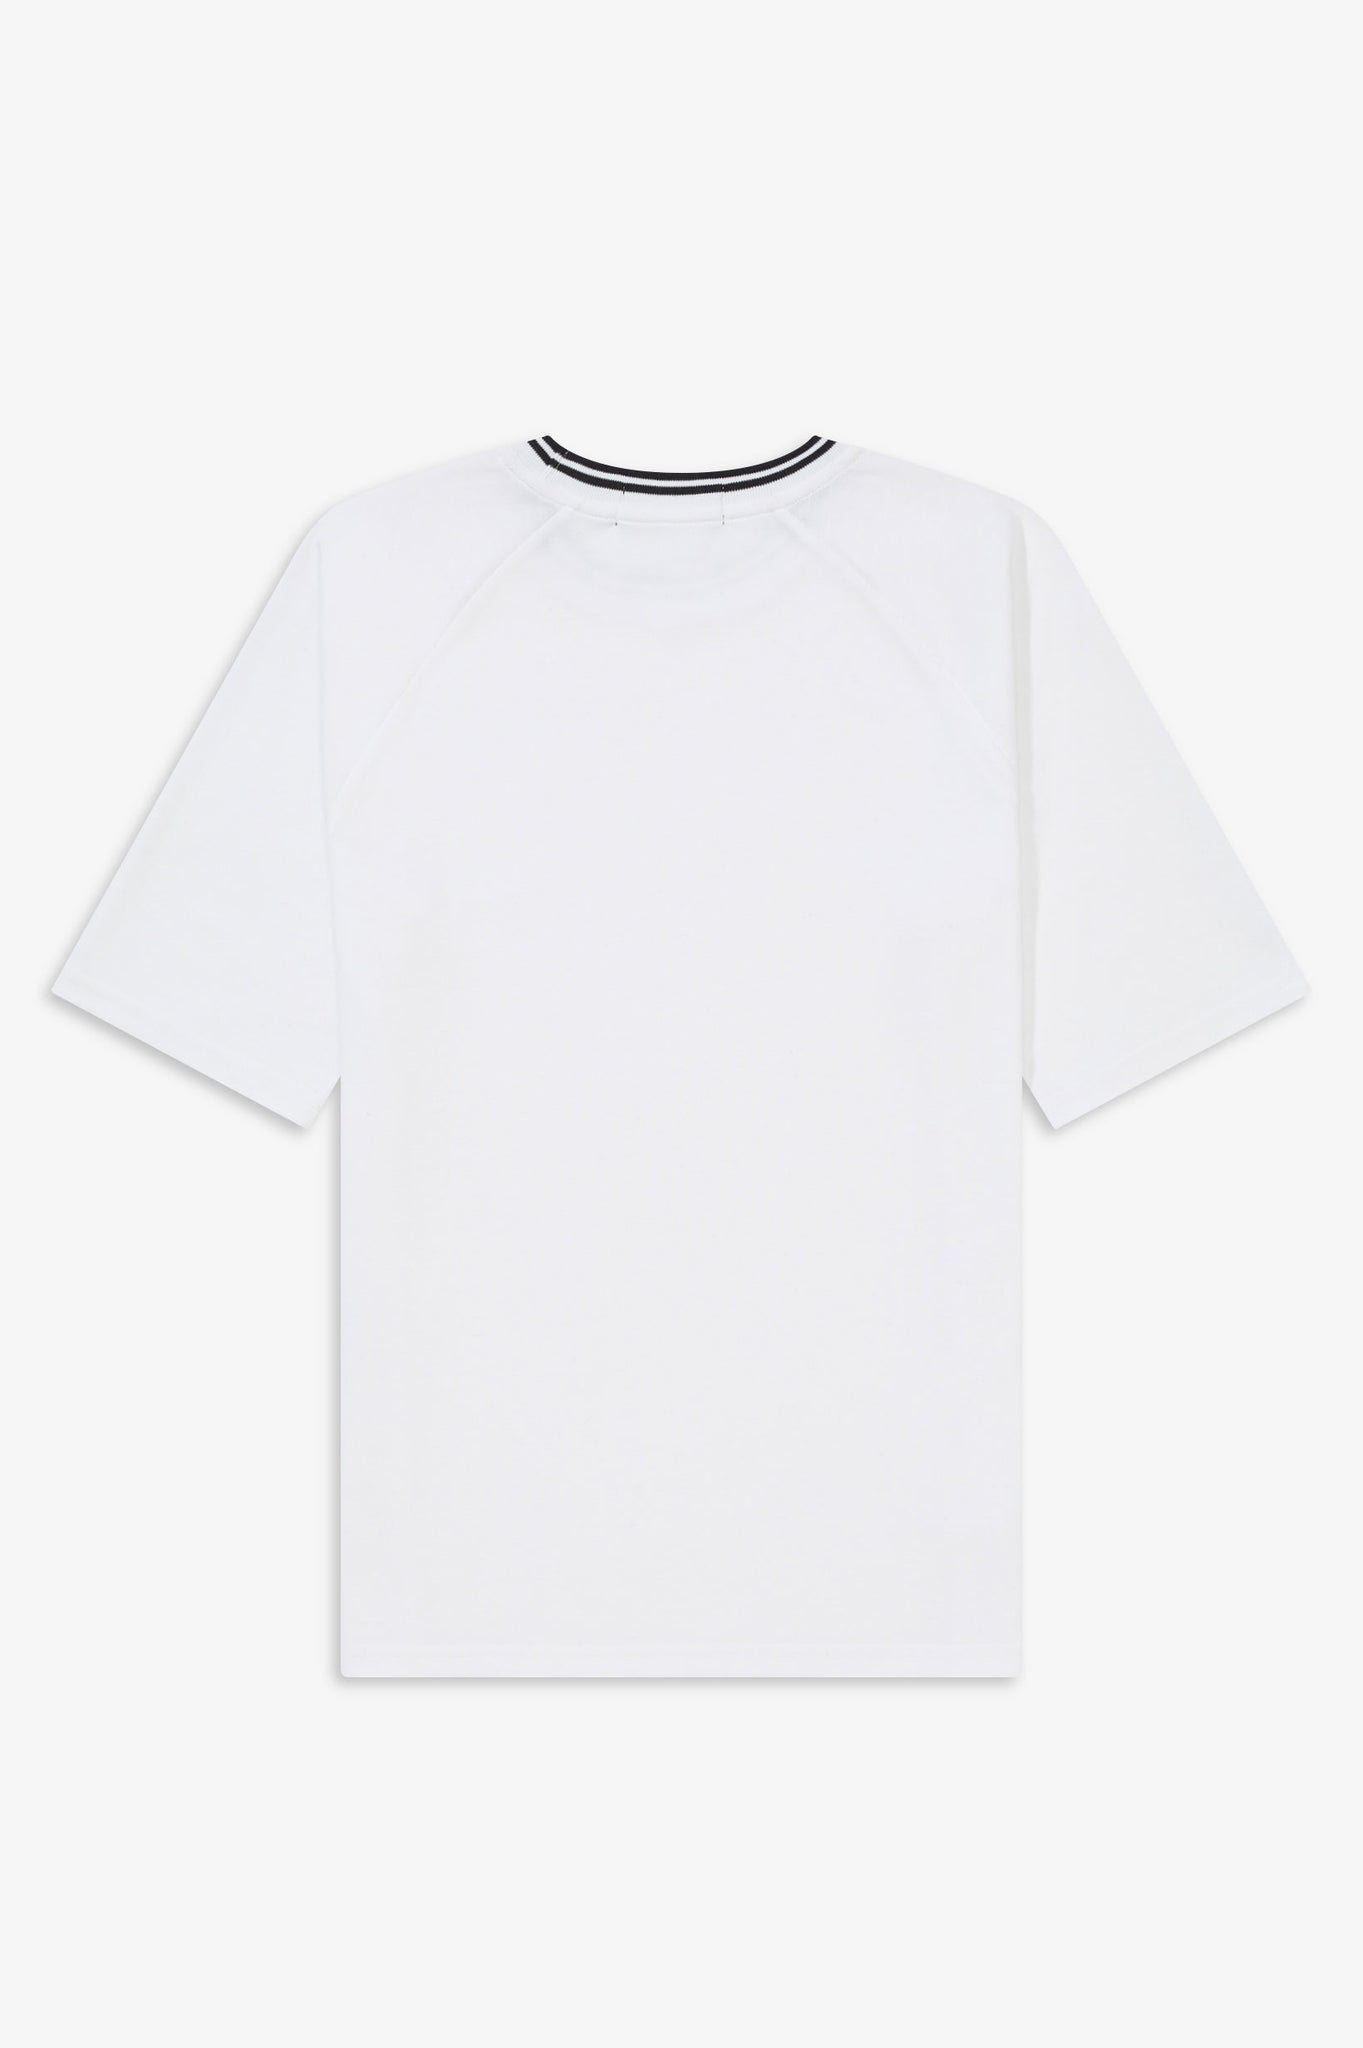 TWIN TIPPED PIQUE T-SHIRT